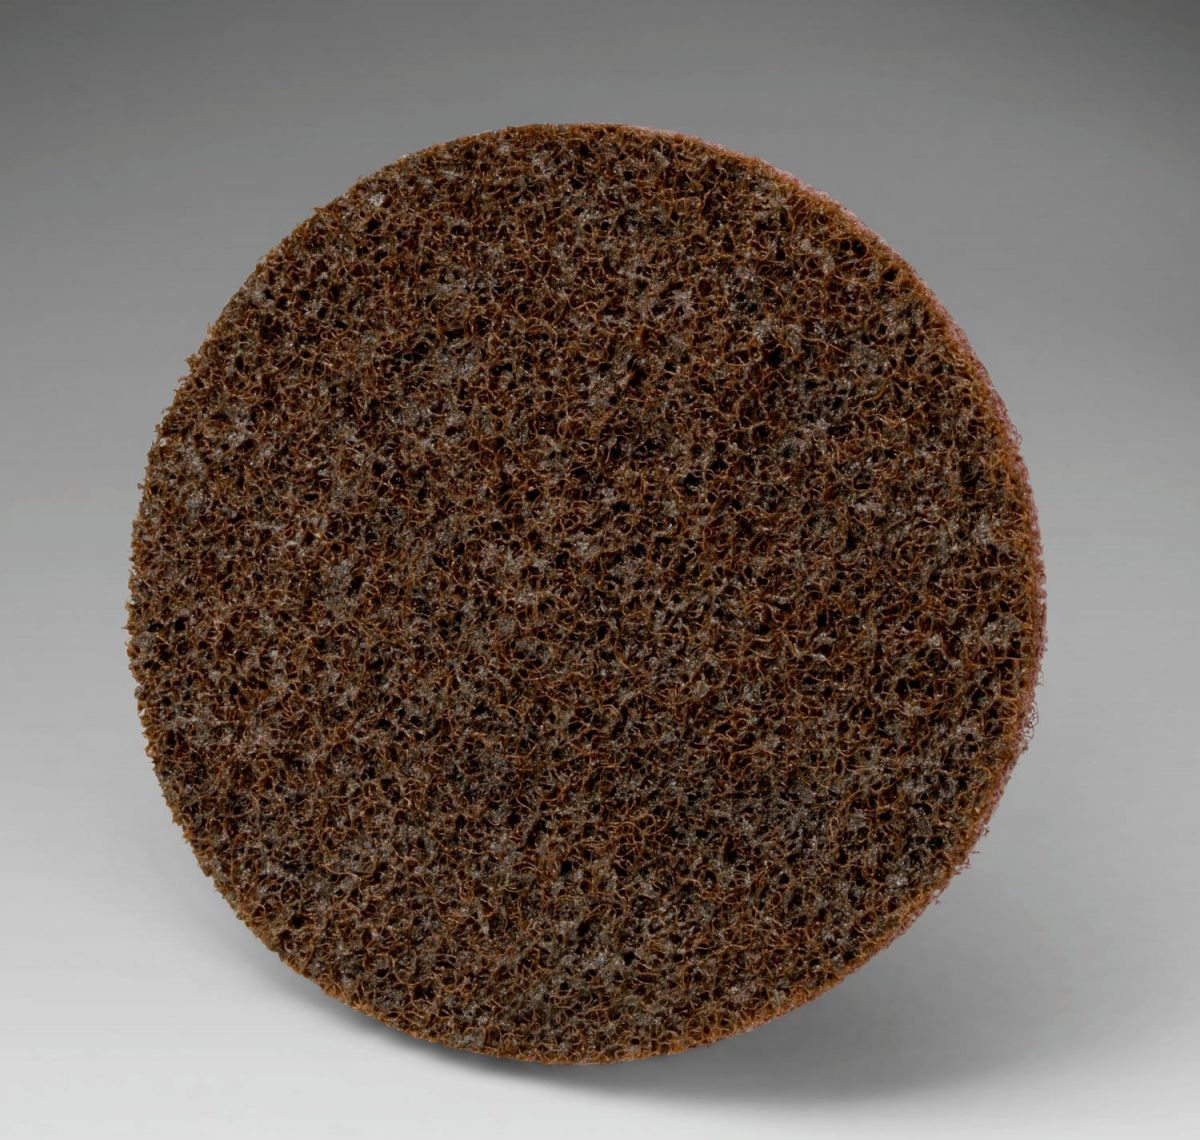 3m scotchbrite surface conditioning schijf scdh 125 mm x 22 mm a crs pn60988